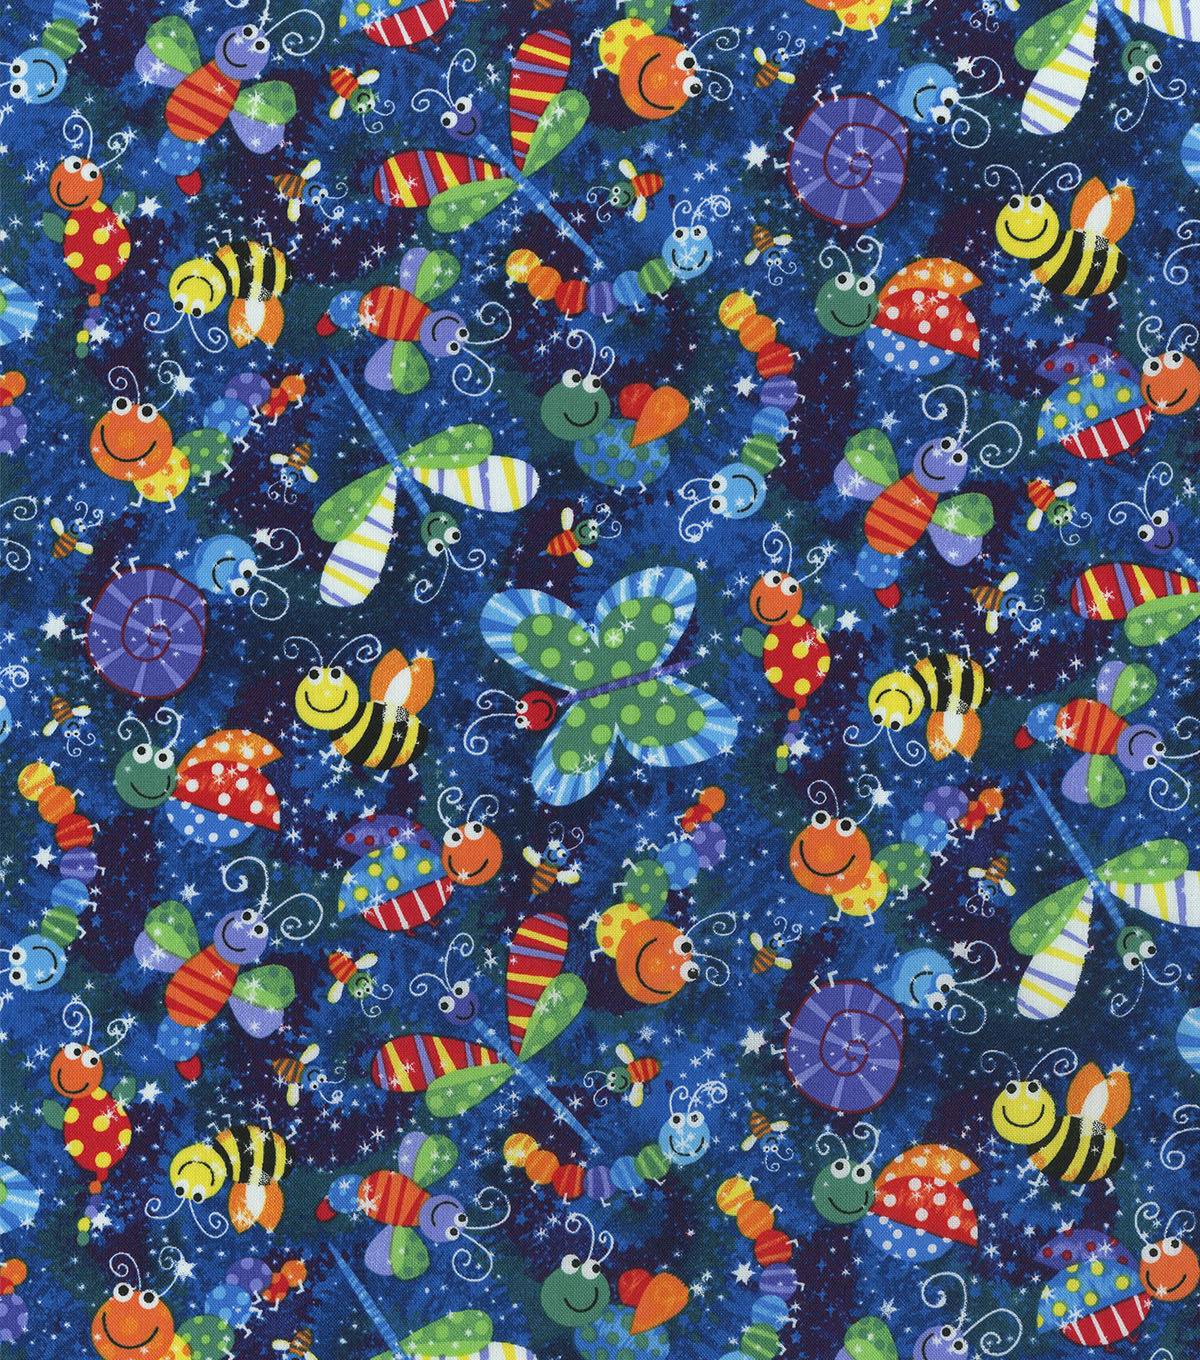 Novelty Cotton Fabric -Patterned Insects